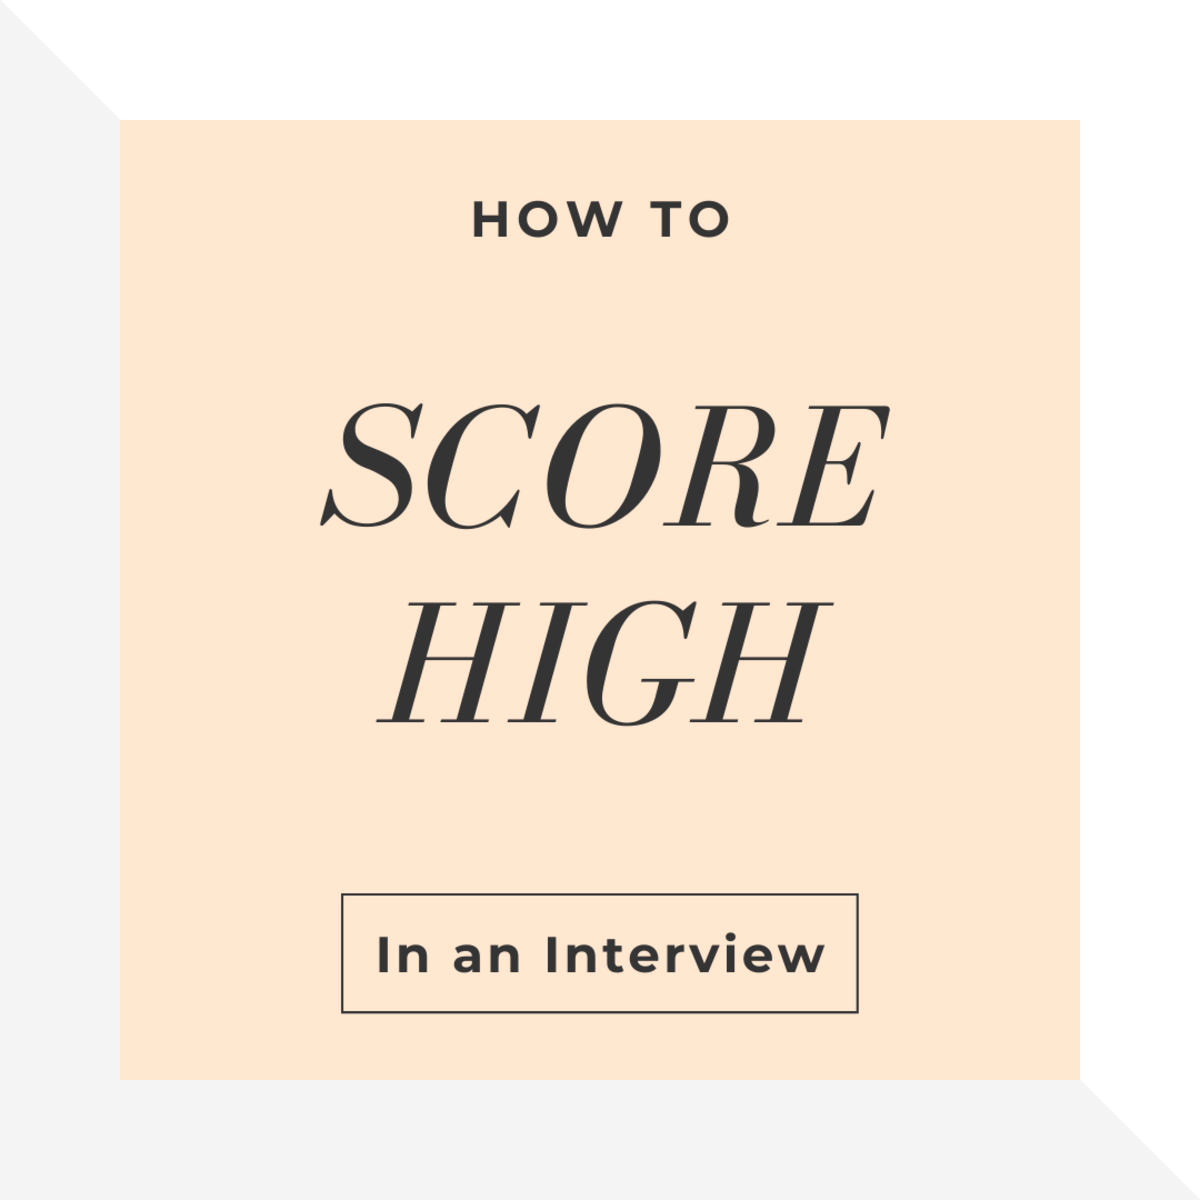 How to Score High in a Job Interview